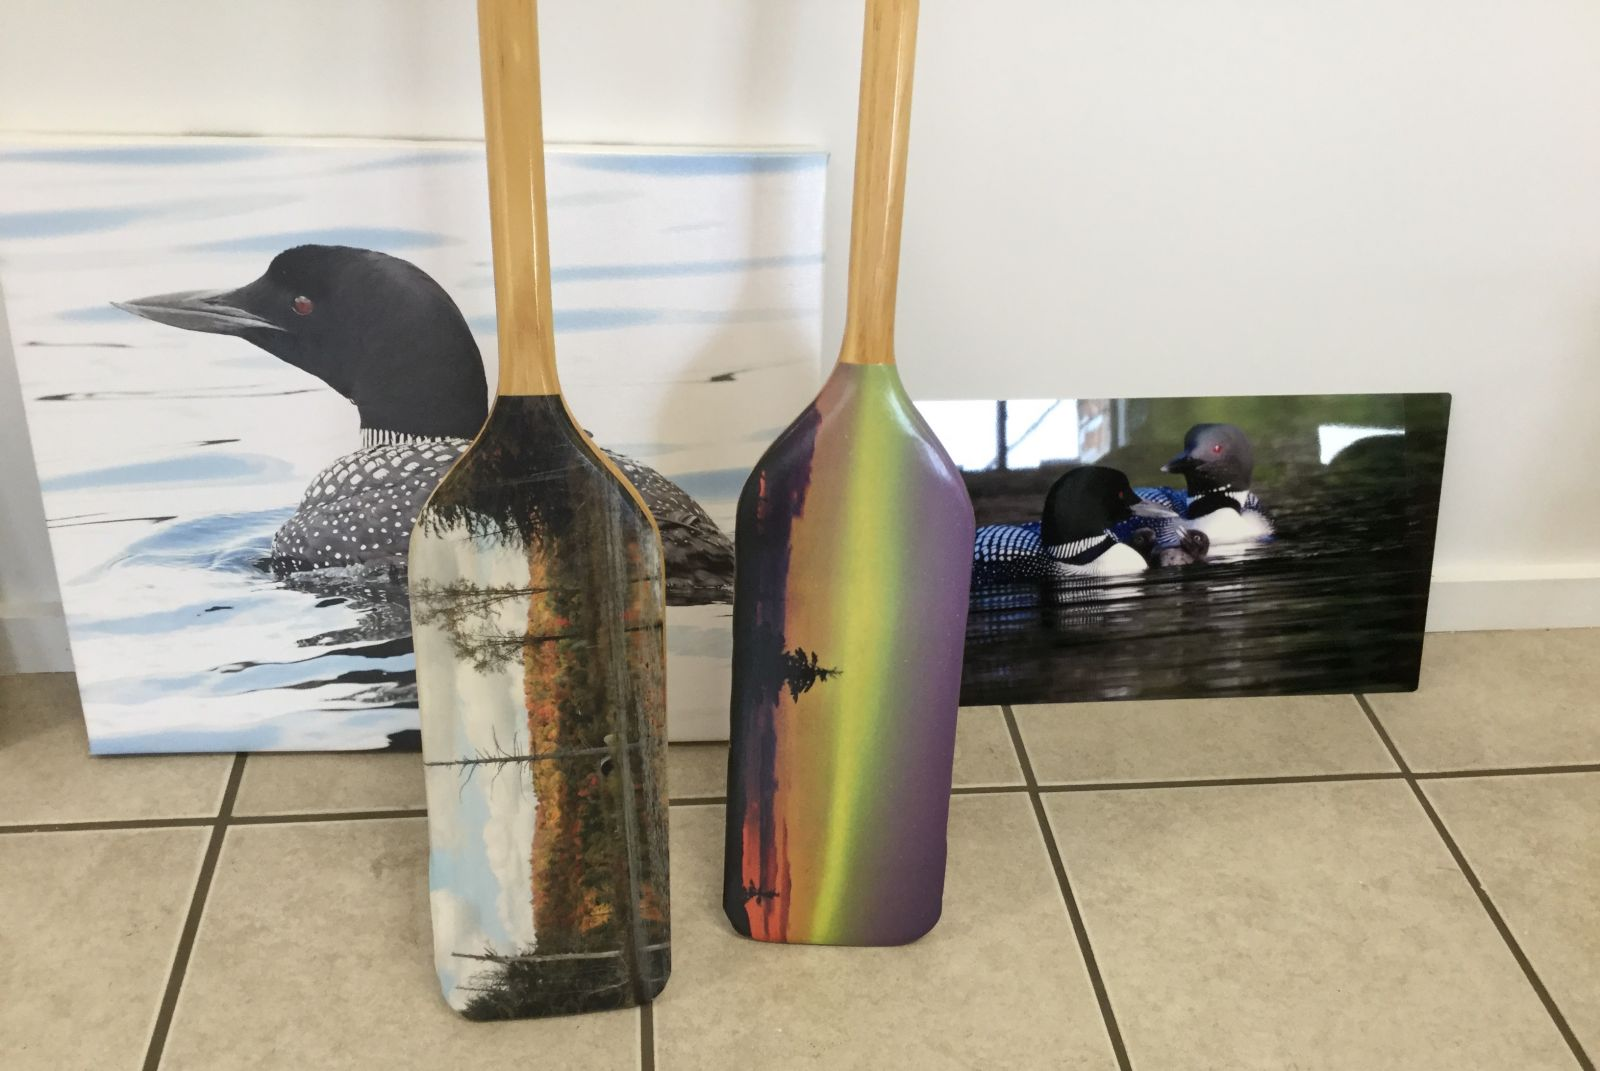 This art is full of Adirondack nature, even down to the painted canoe paddles.